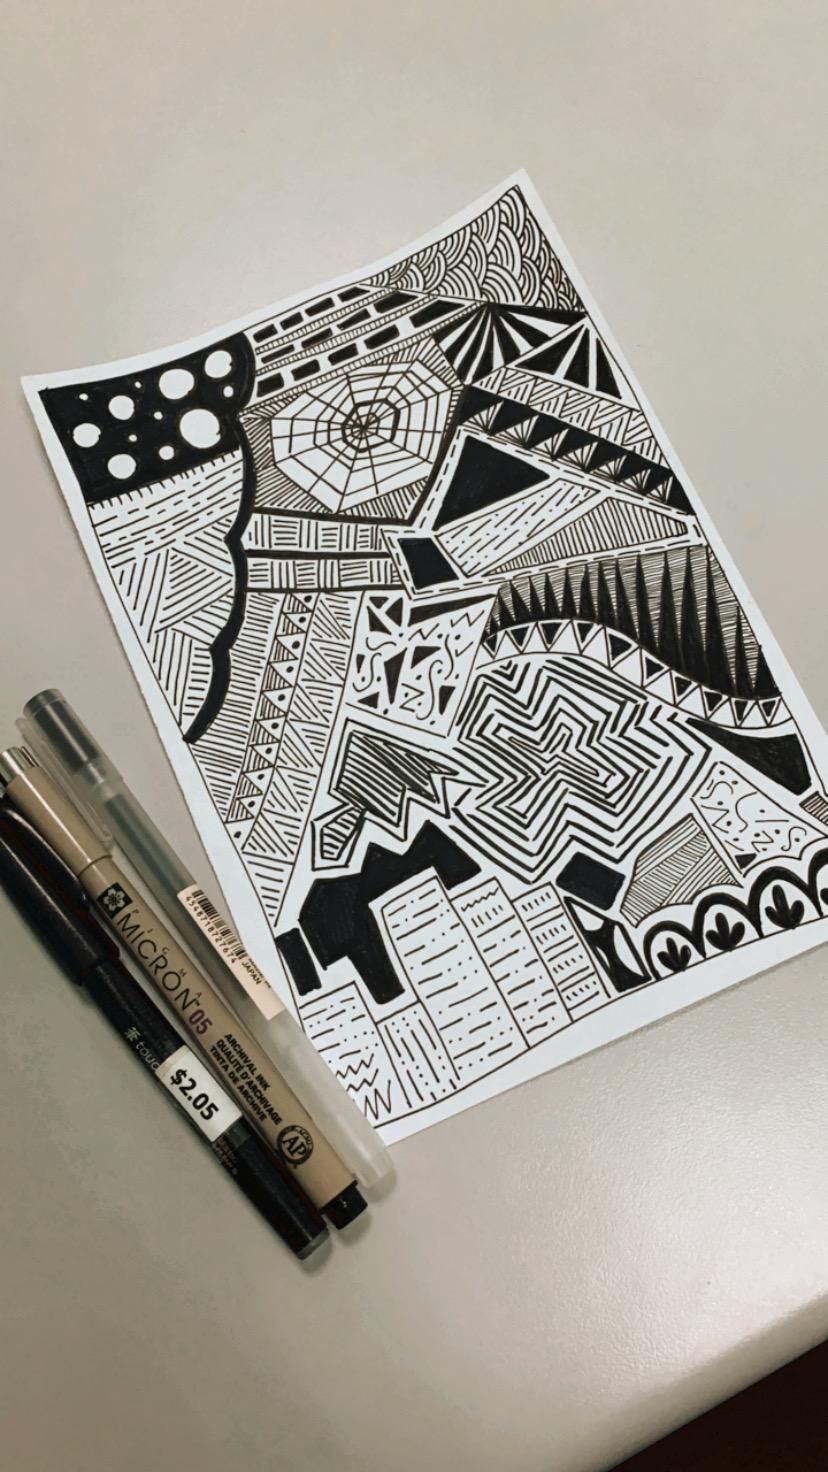 Doodles! - image 2 - student project